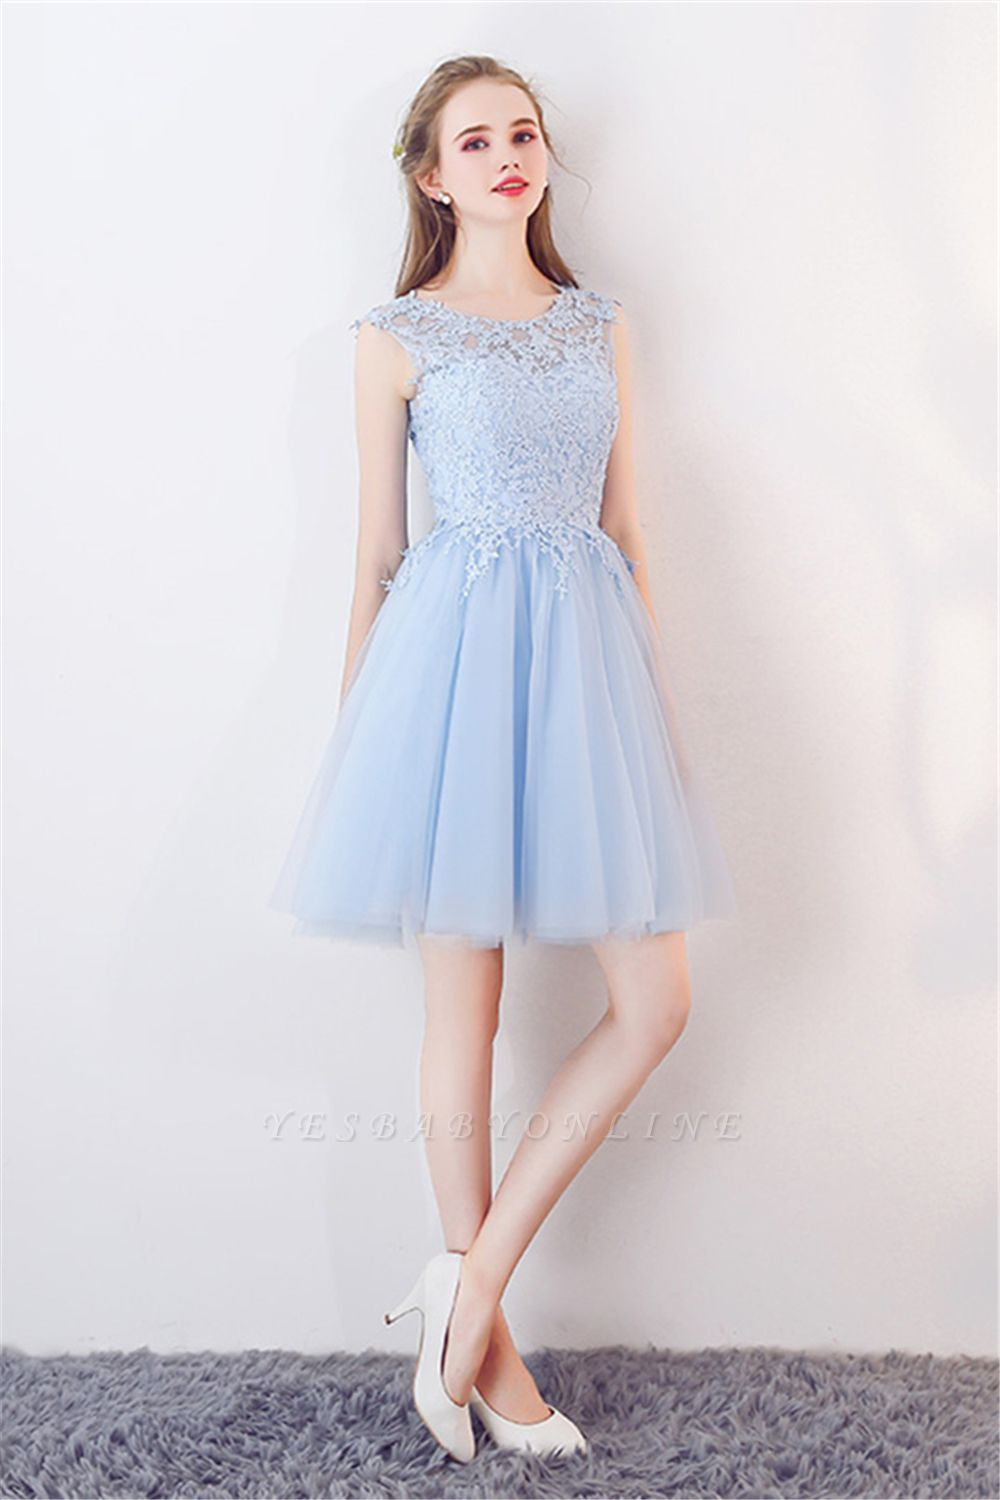 Baby-Blue Lace  Short Appliques Sleeveless Homecoming Dresses